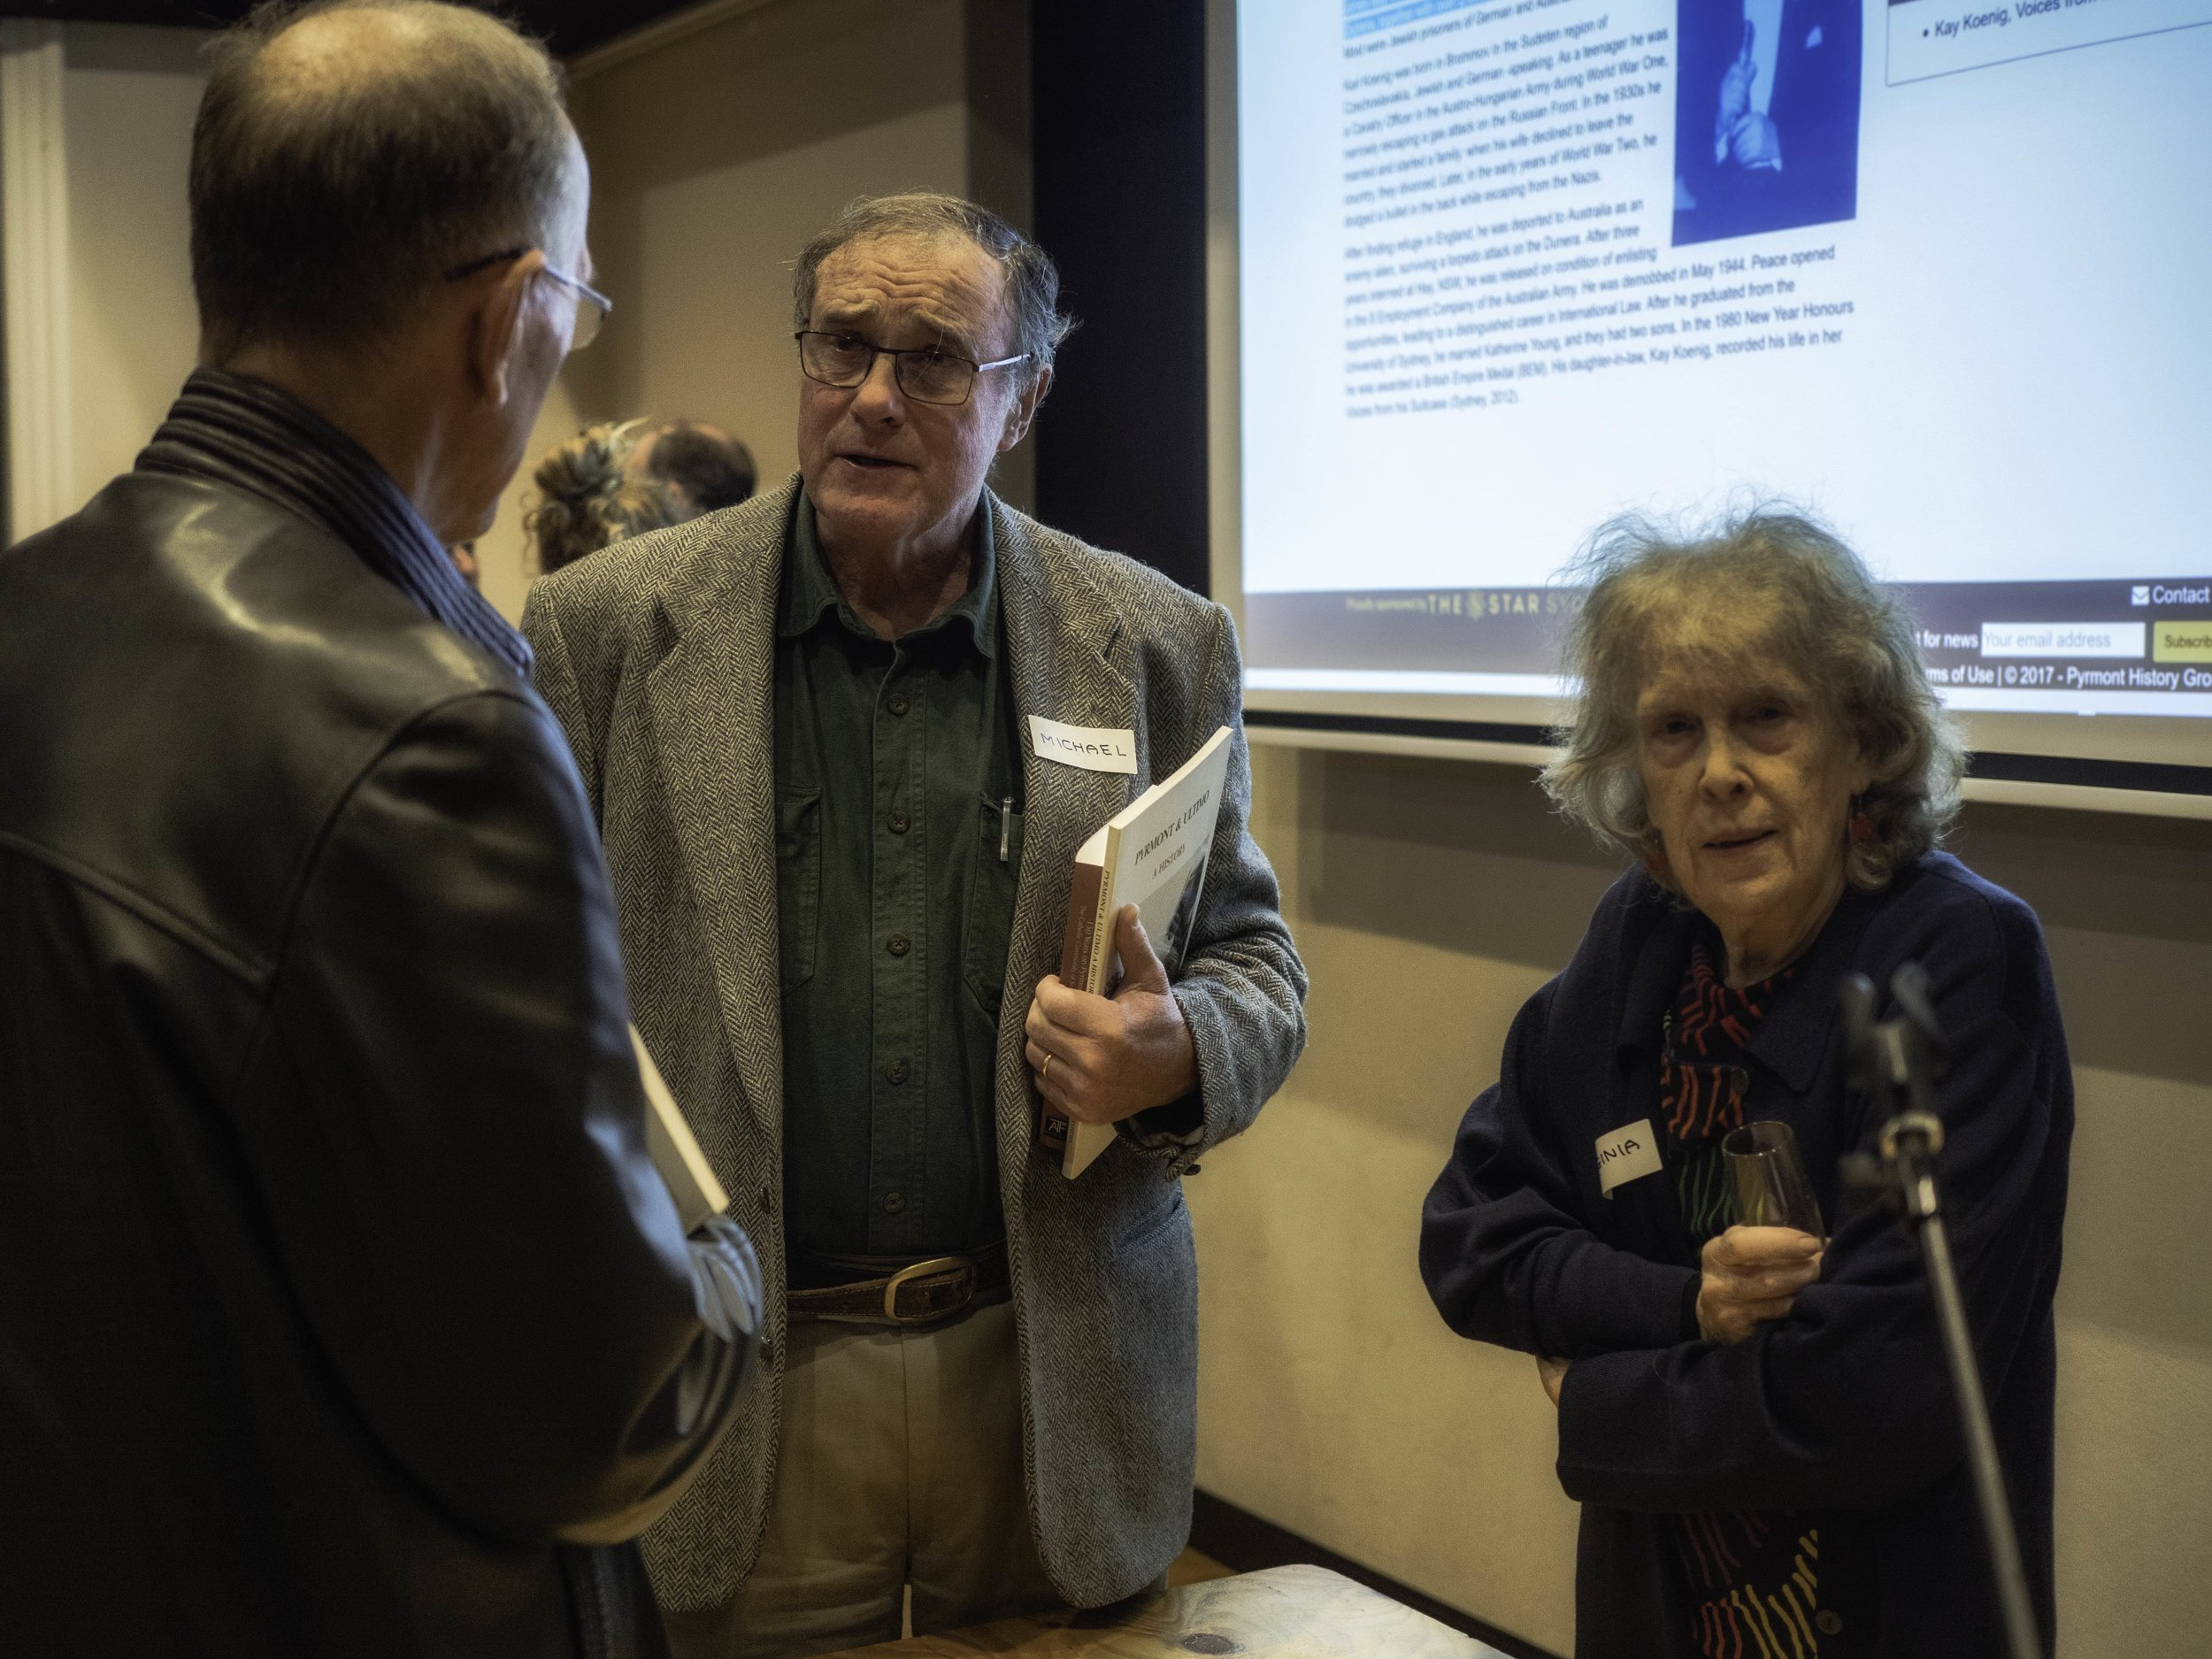 Ross Hindmarsh with Michael Matthews and Virginia Spate at the website launch, 2017